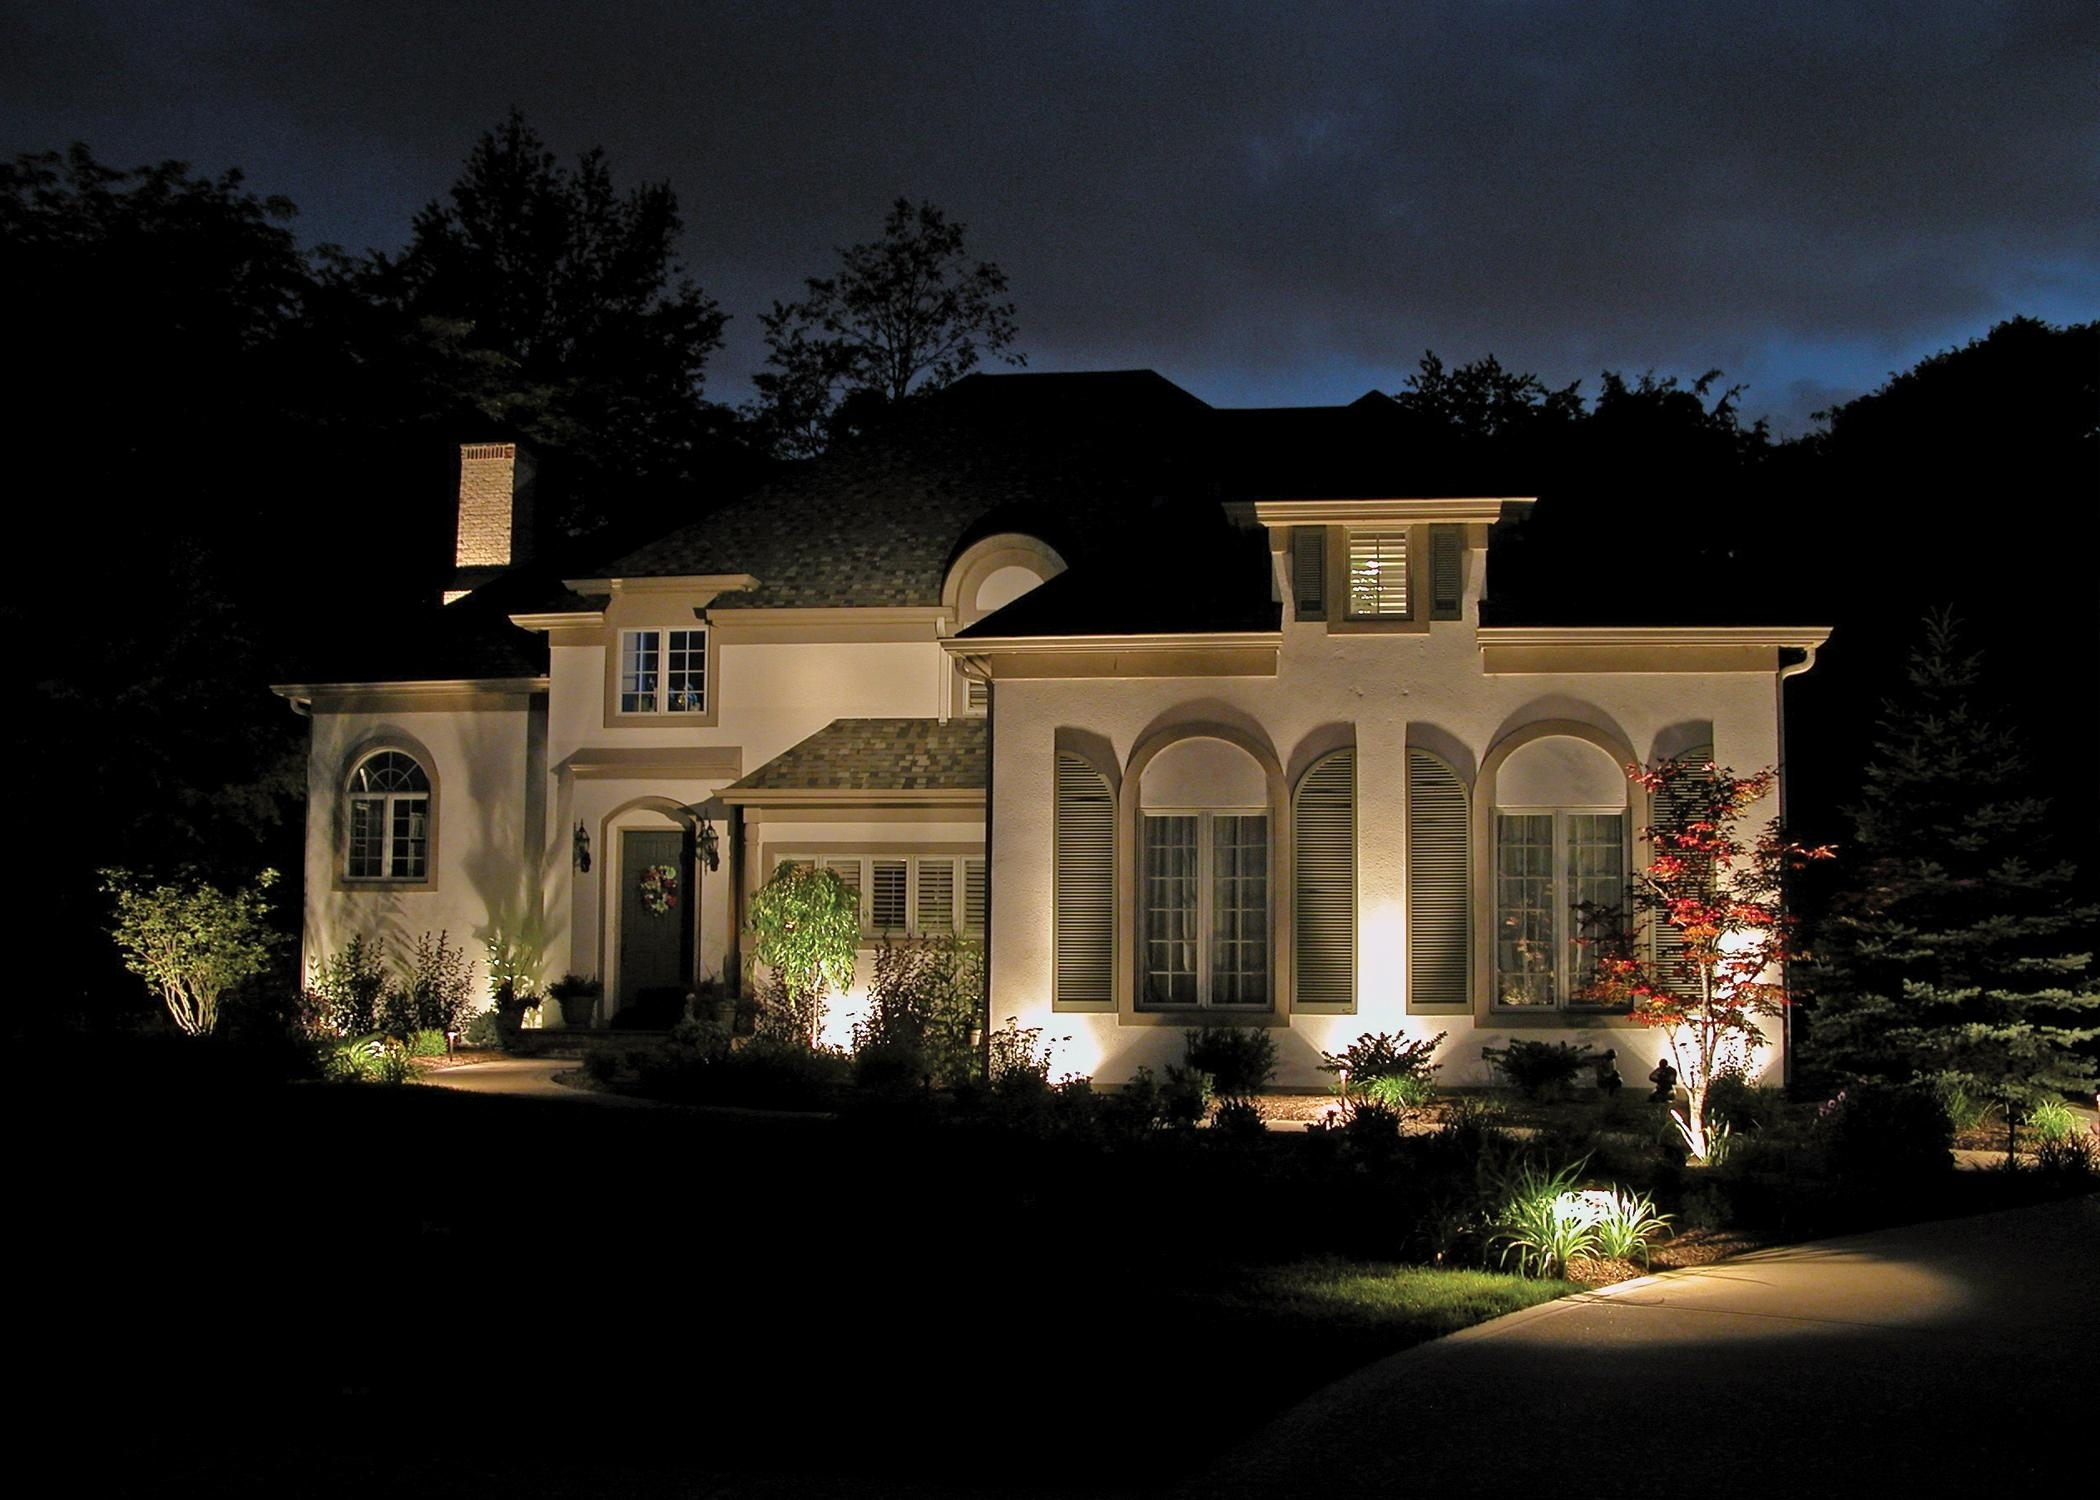 Outdoor Lights For House: 17 Extraordinary Outdoor House Lights with regard to Outdoor Lanterns for House (Image 16 of 20)